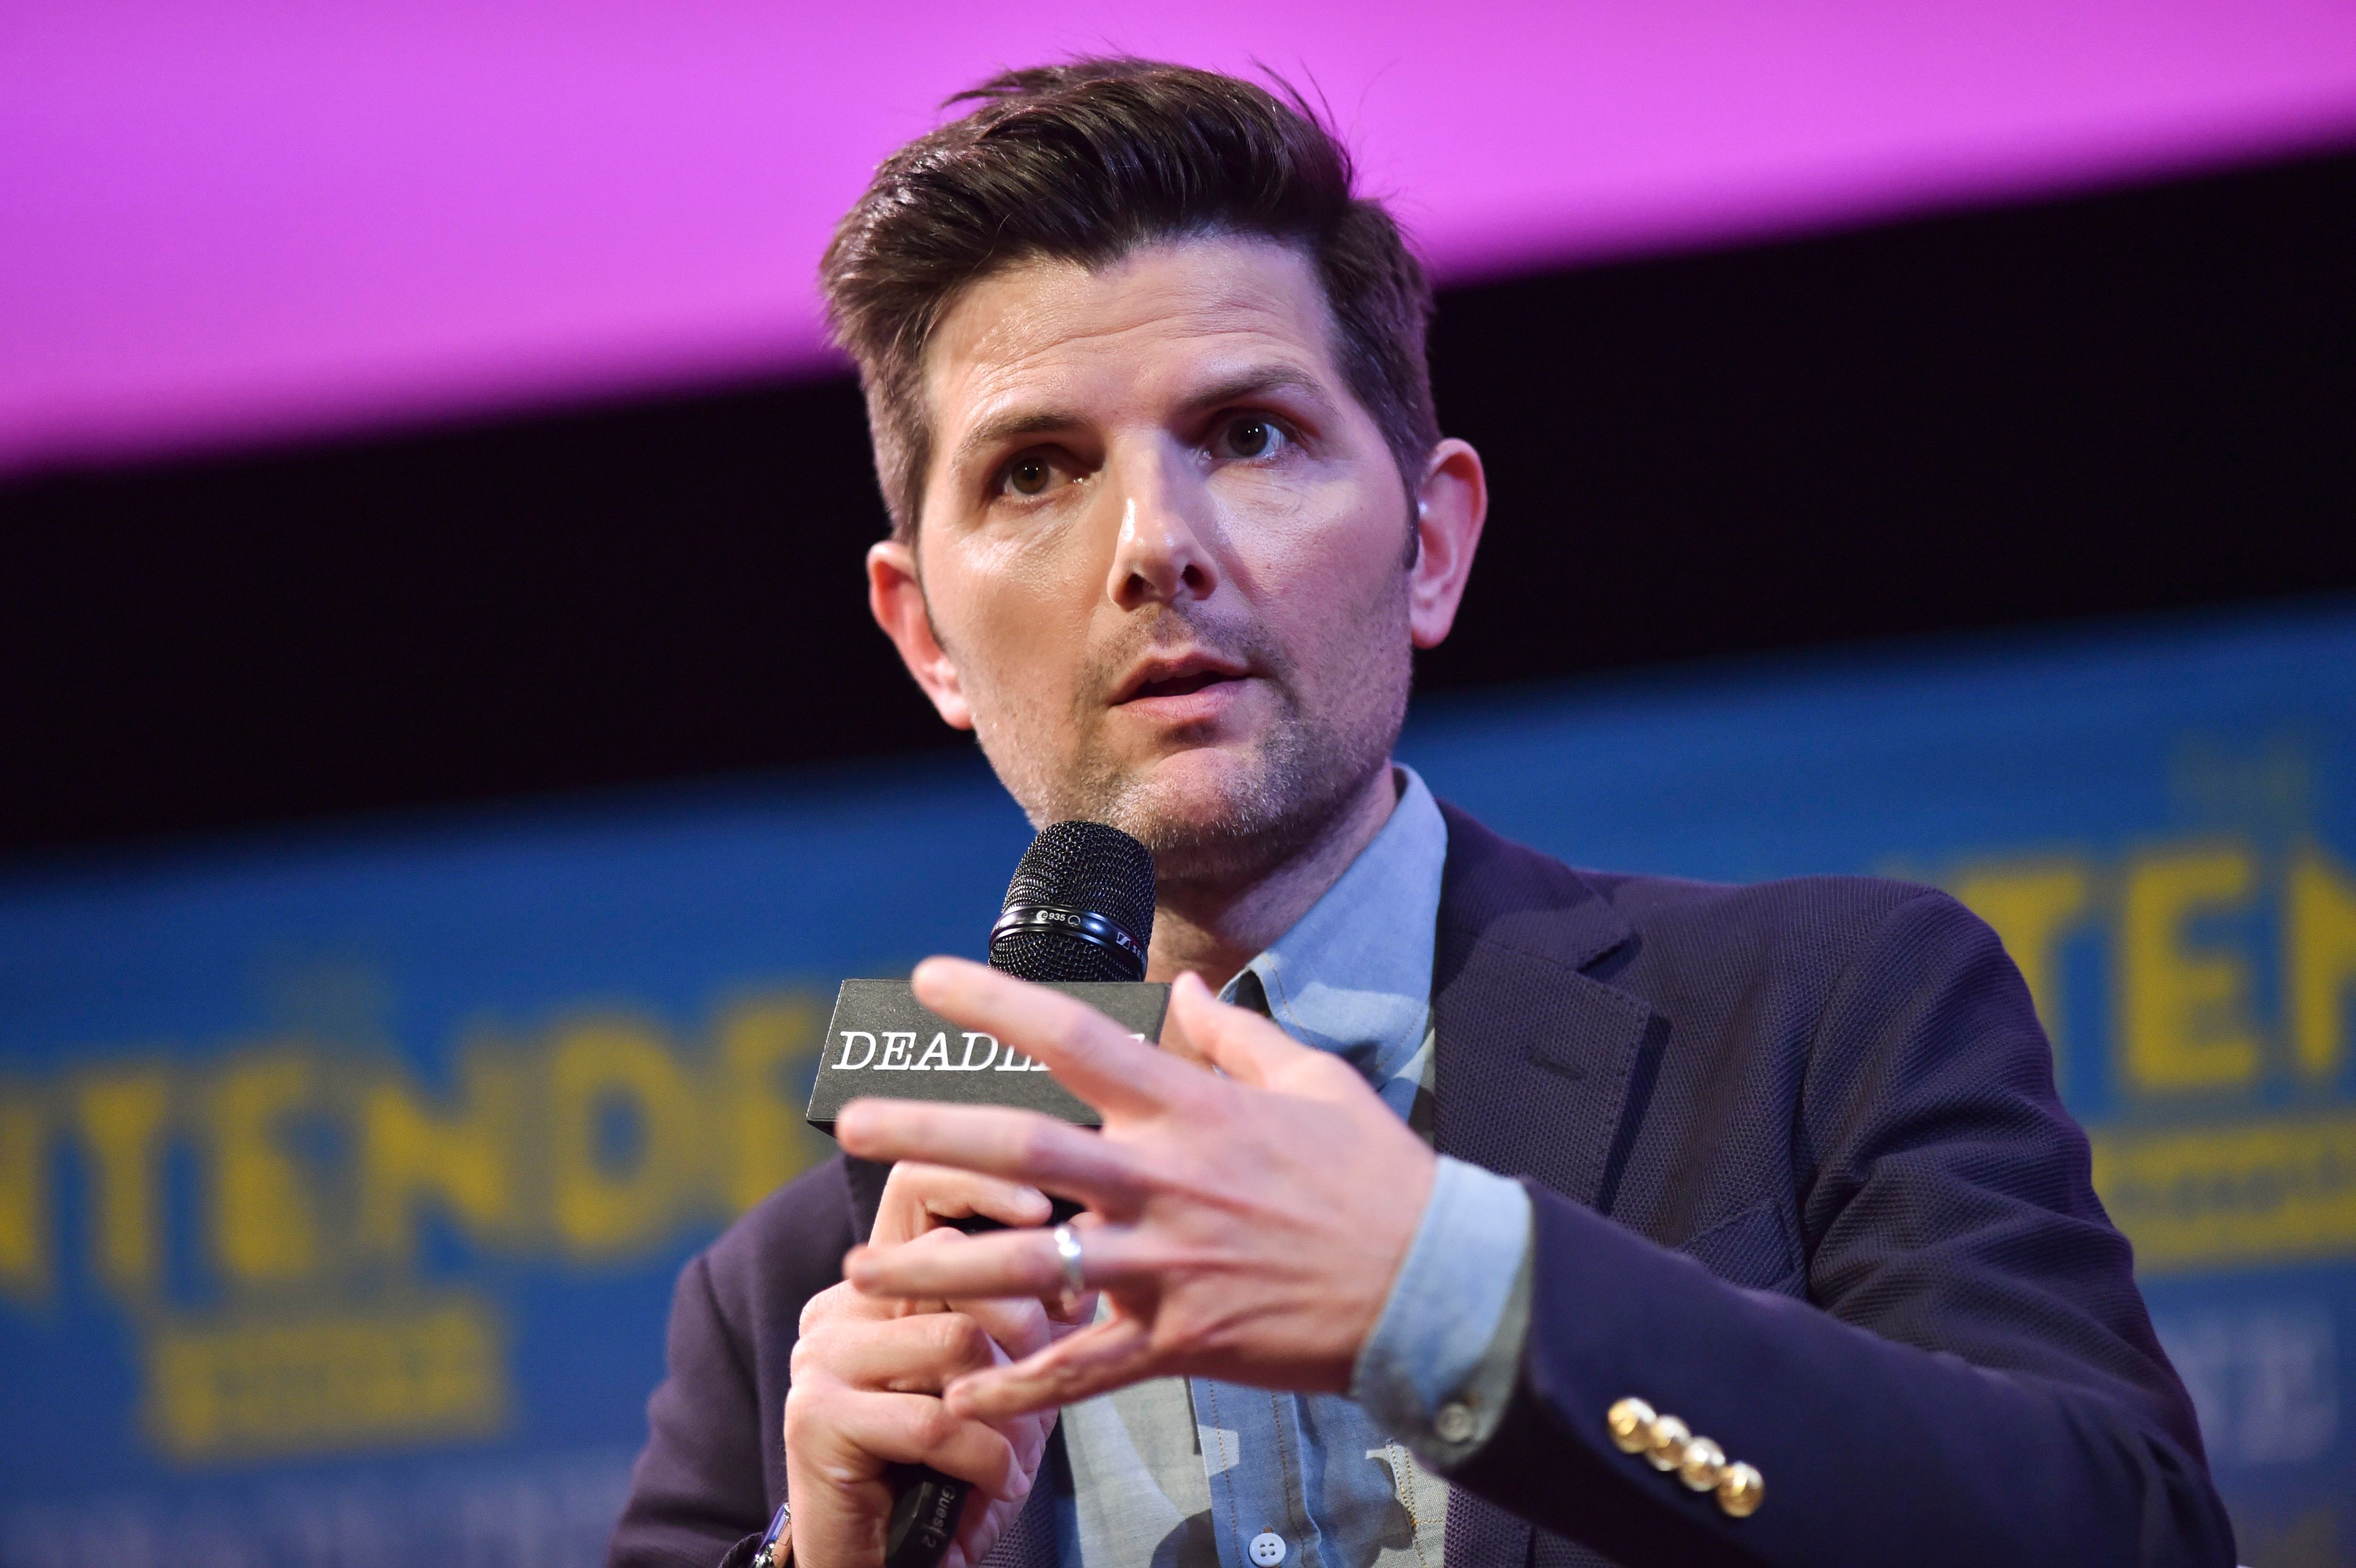 Adam Scott Slams Mitch McConnell for Using 'Parks and Rec' Character to Support Trump